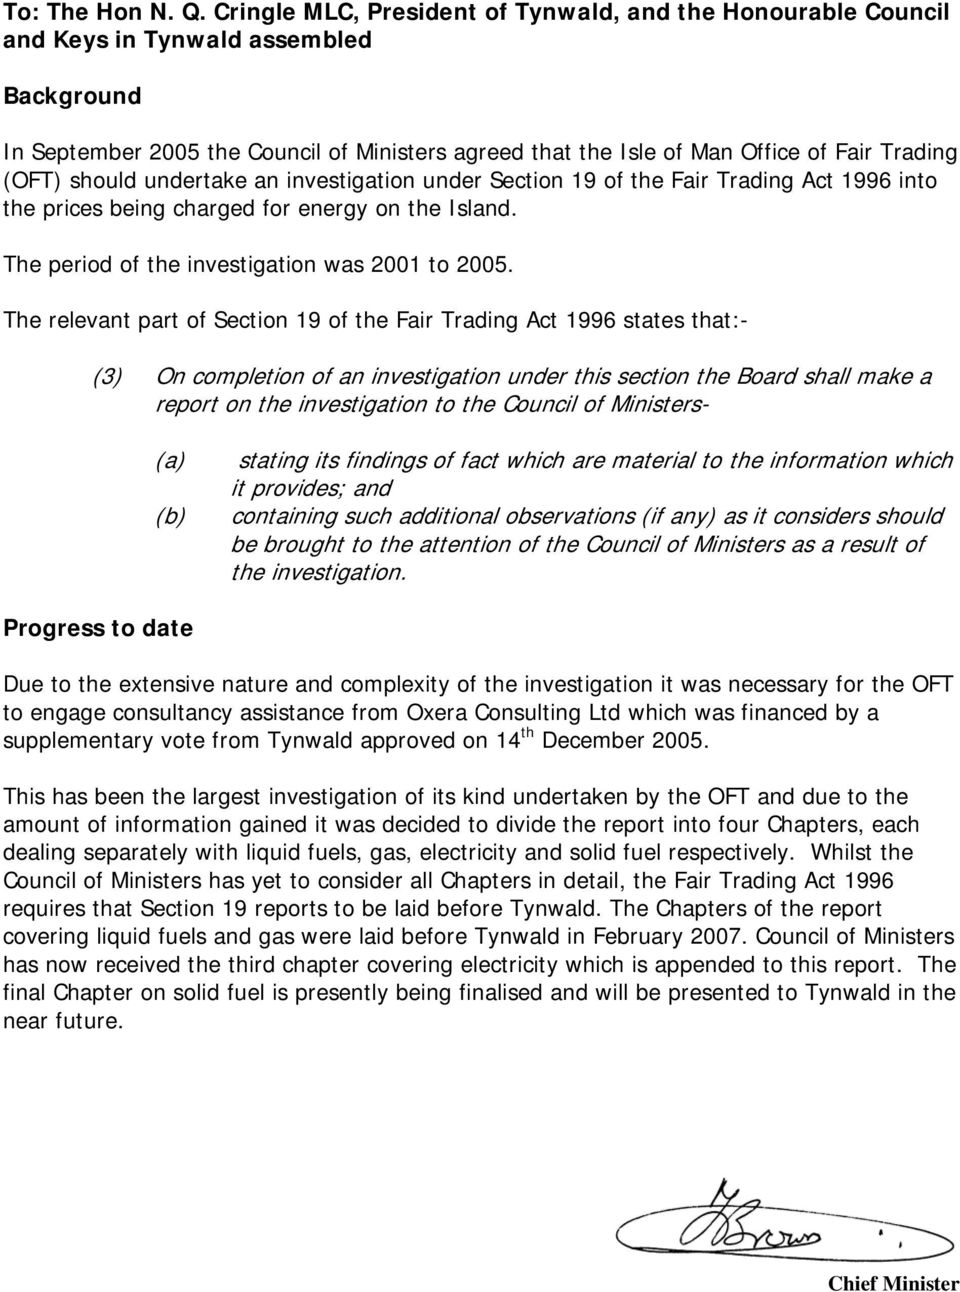 (OFT) should undertake an investigation under Section 19 of the Fair Trading Act 1996 into the prices being charged for energy on the Island. The period of the investigation was 2001 to 2005.